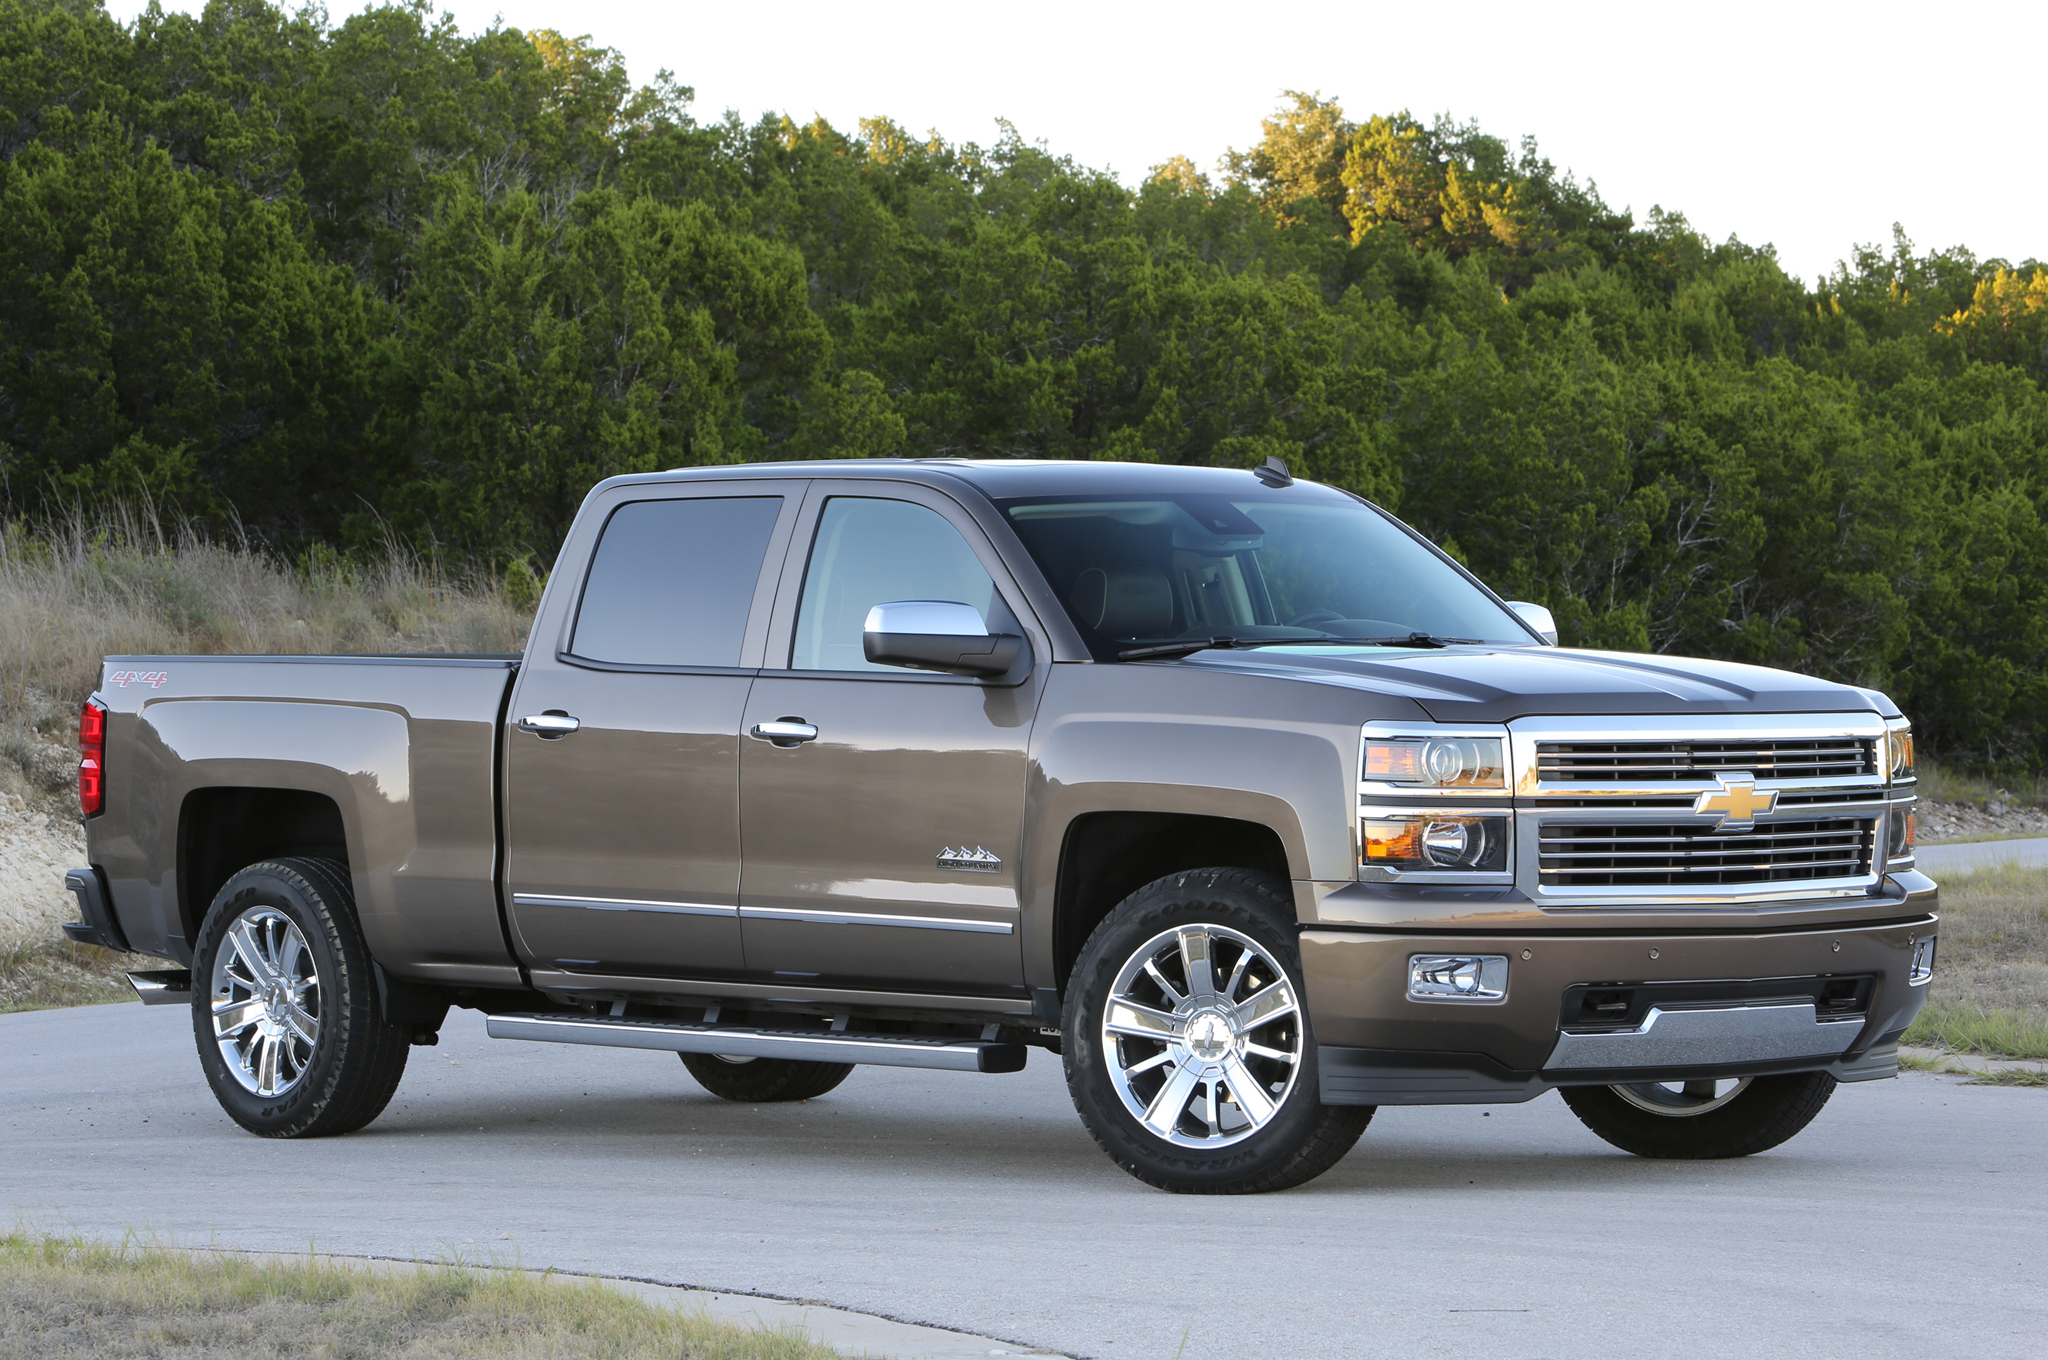 Wonderful 2014 Chevrolet Silverado High Country And GMC Sierra Denali 1500 6.2 First  Drive